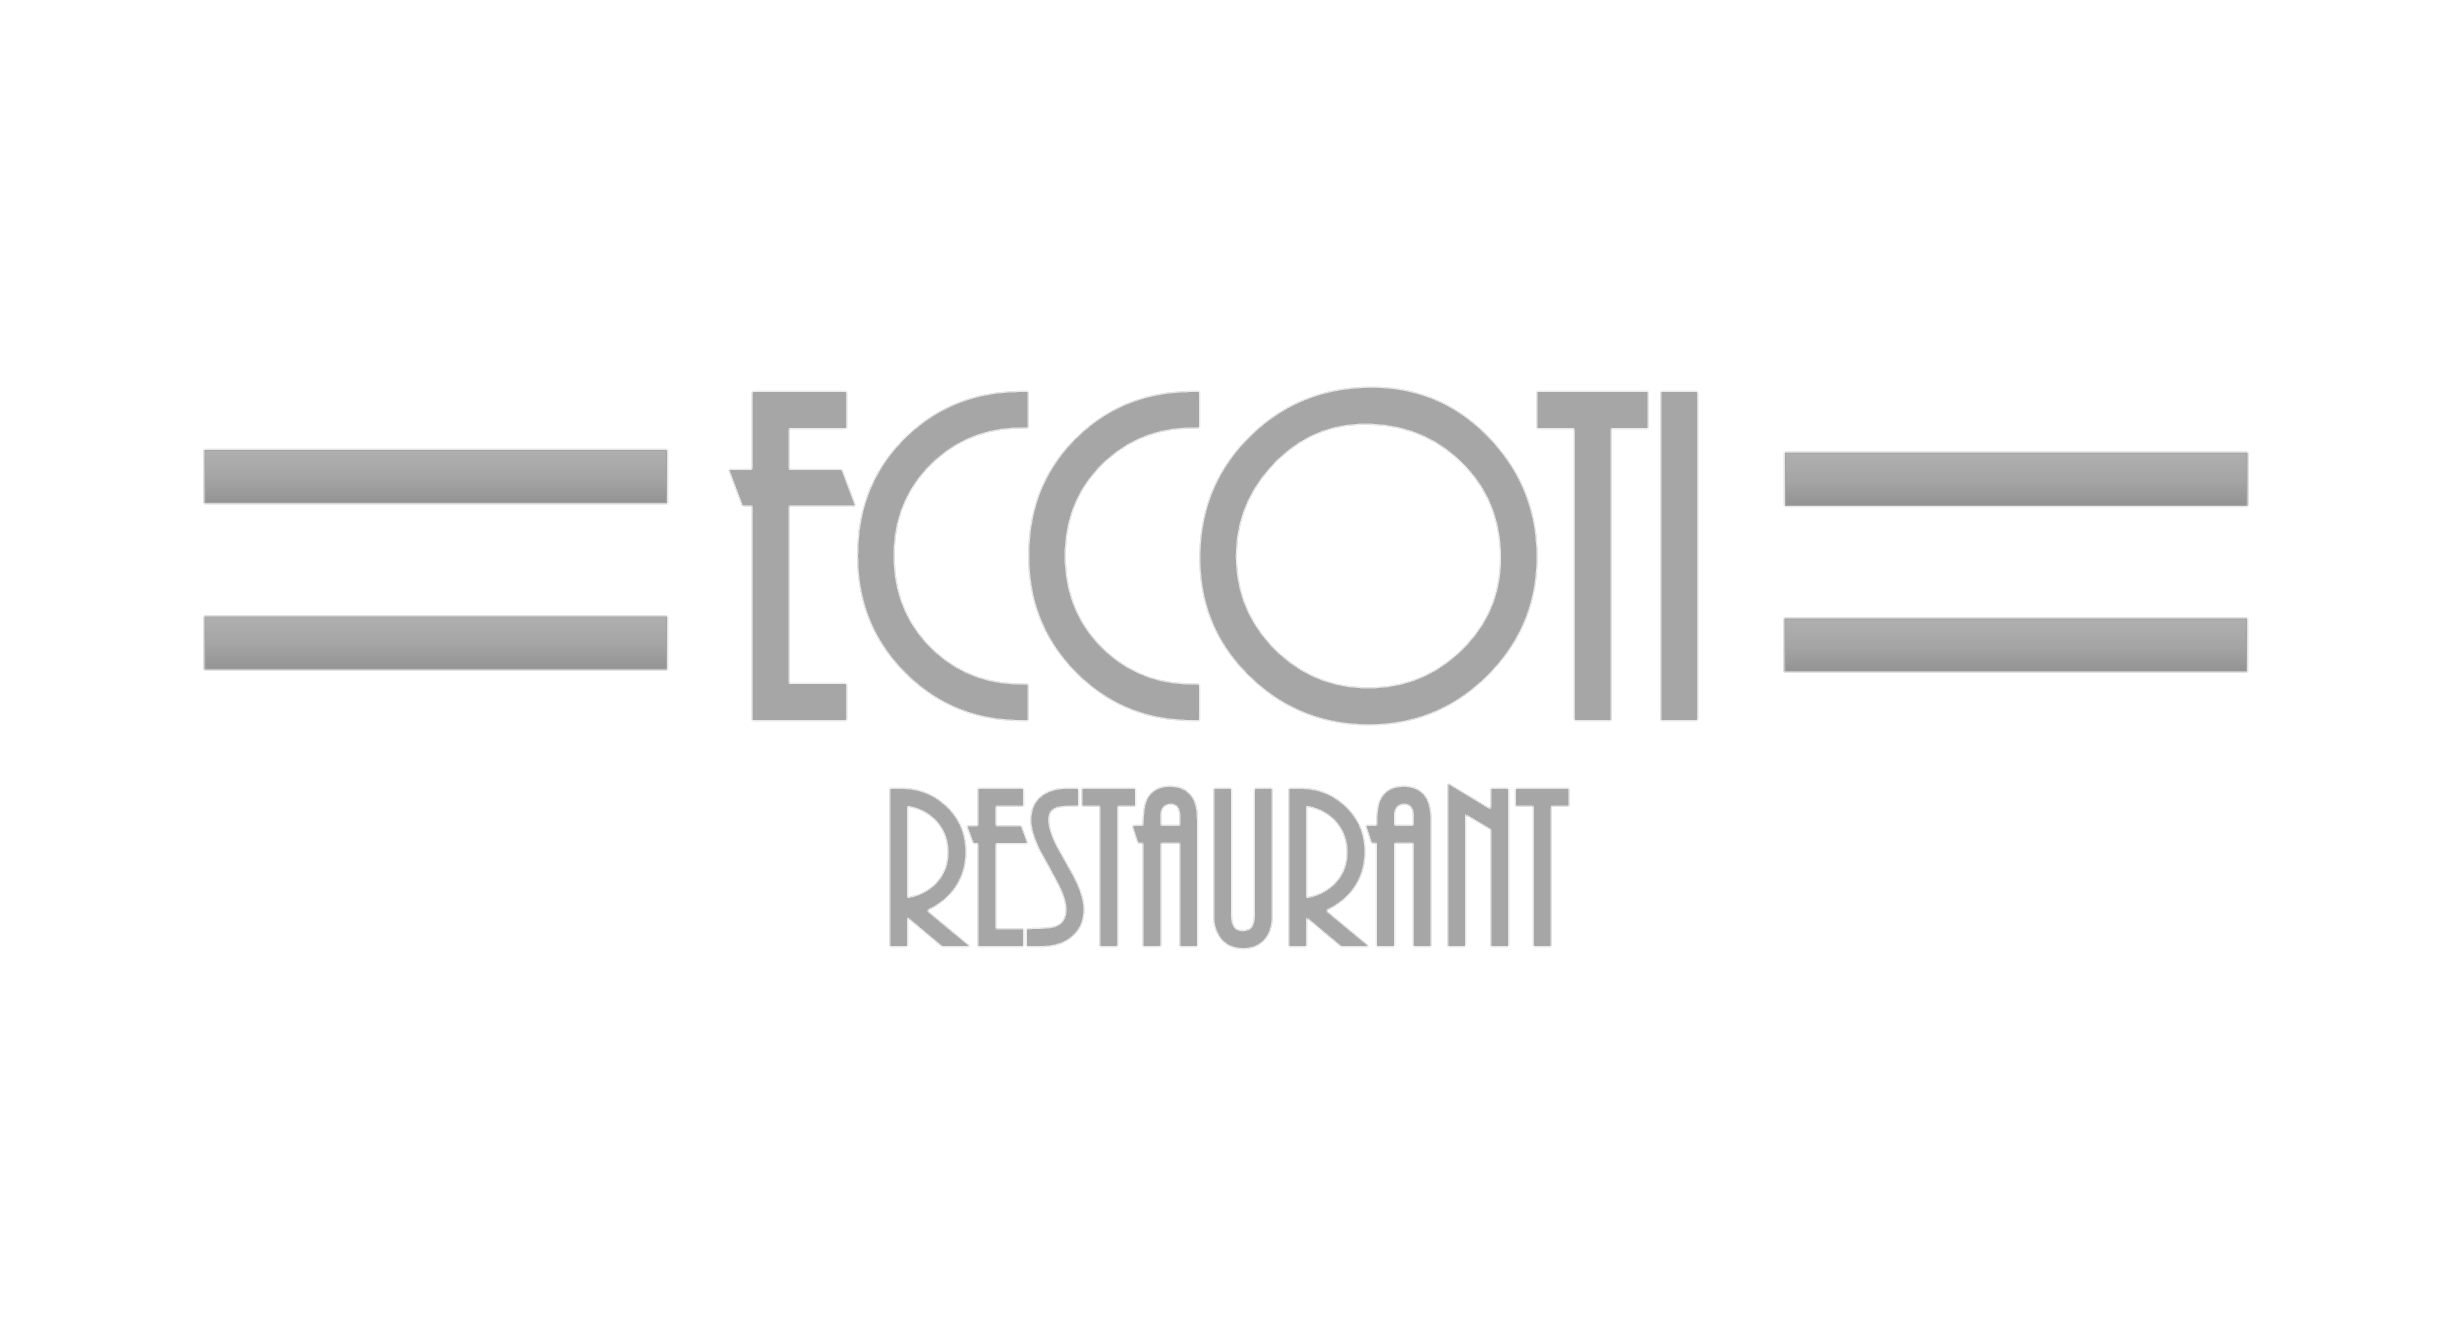 Eccoti Restaurant logo. Links to homepage.